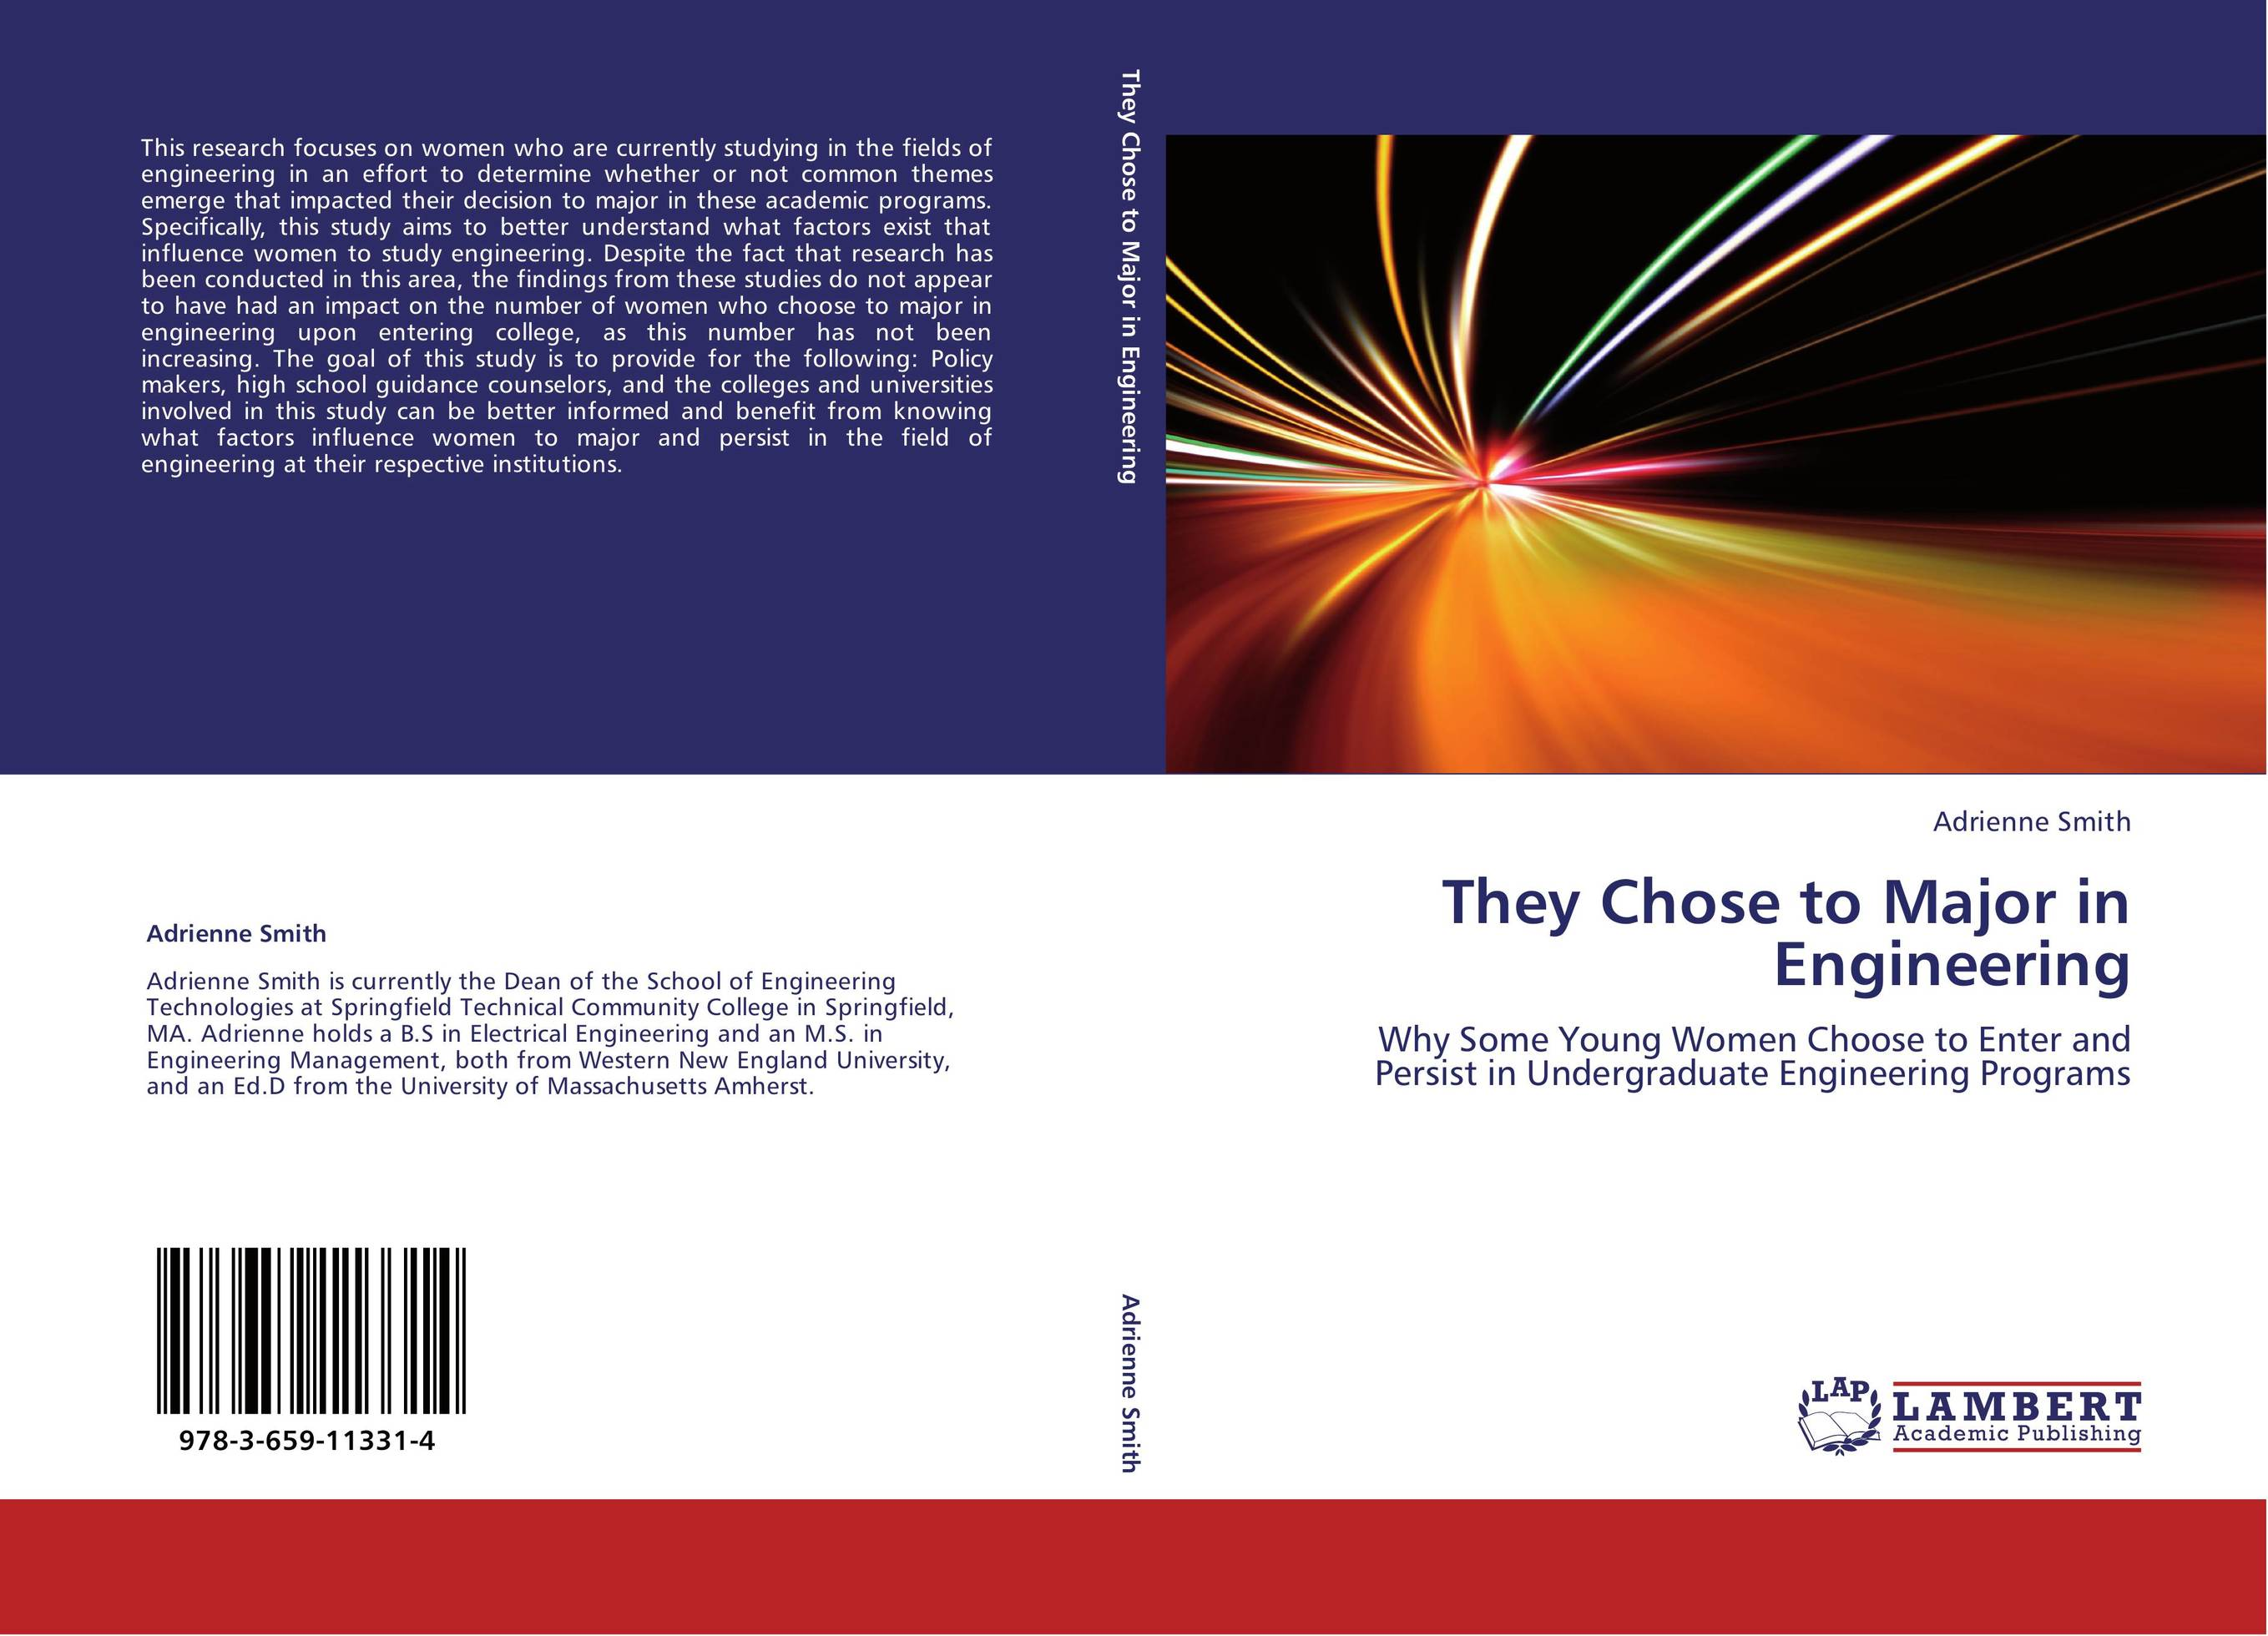 an overview of technology assessment in engineering and other fields Executive summary and recommendations  cess in engineering and other scientific fields research highlighted in this  technology, engineering, and mathematics.